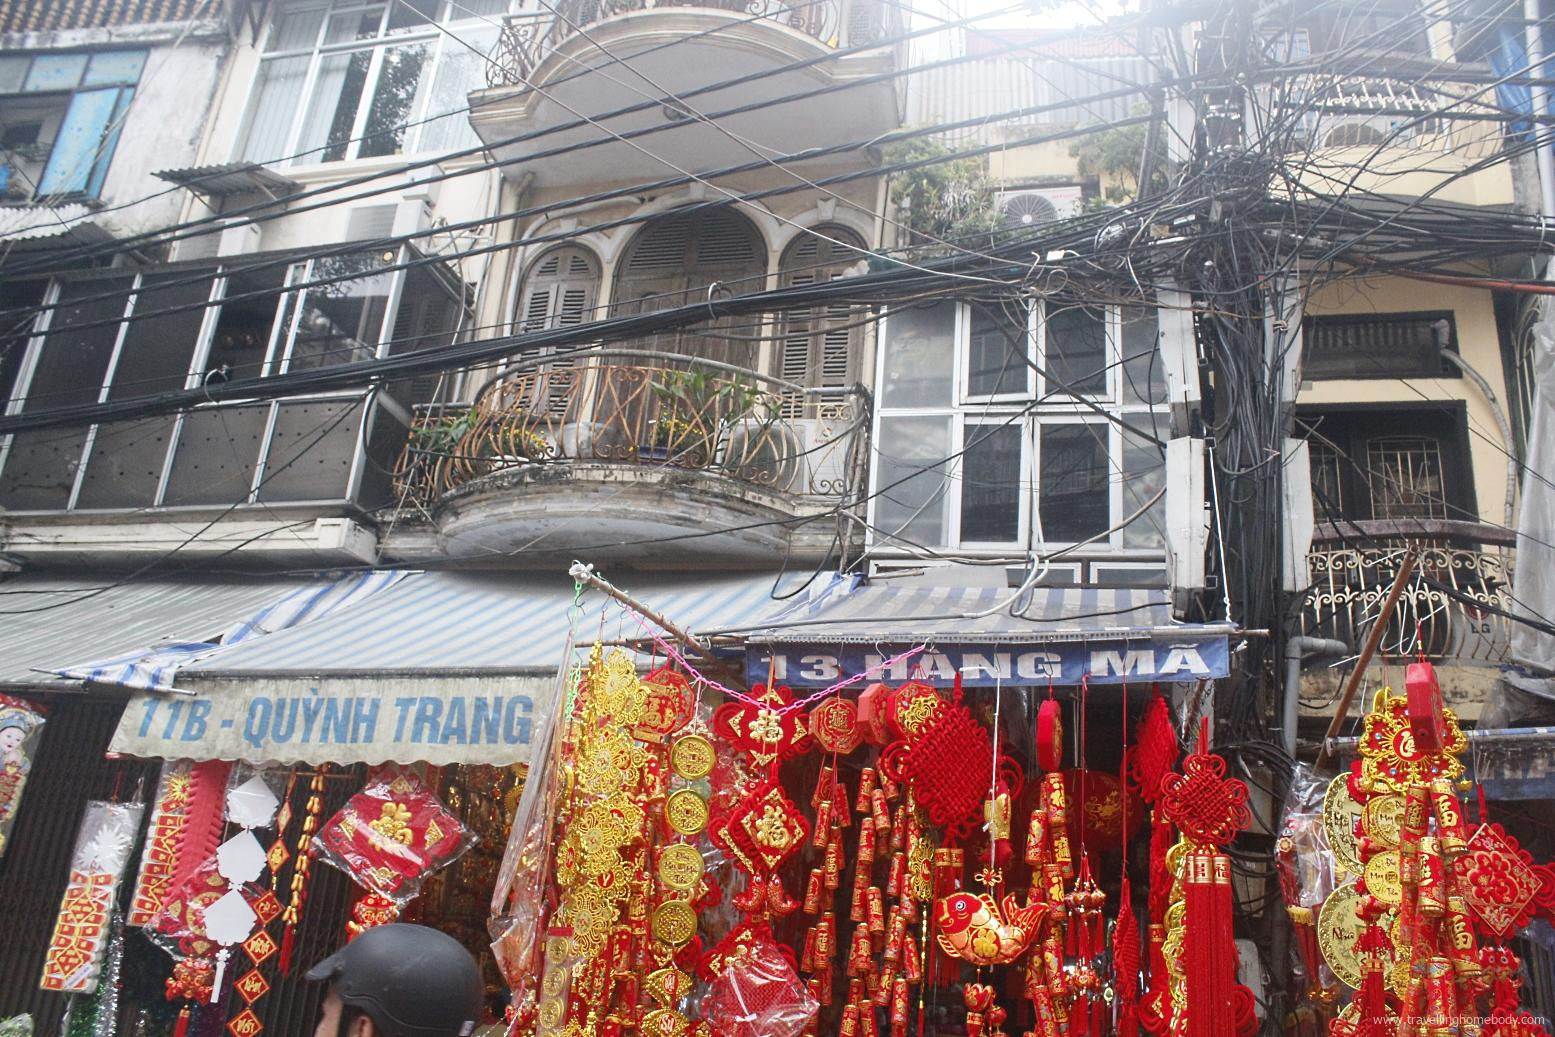 Travelling Homebody's photo essay of Tet in Hanoi